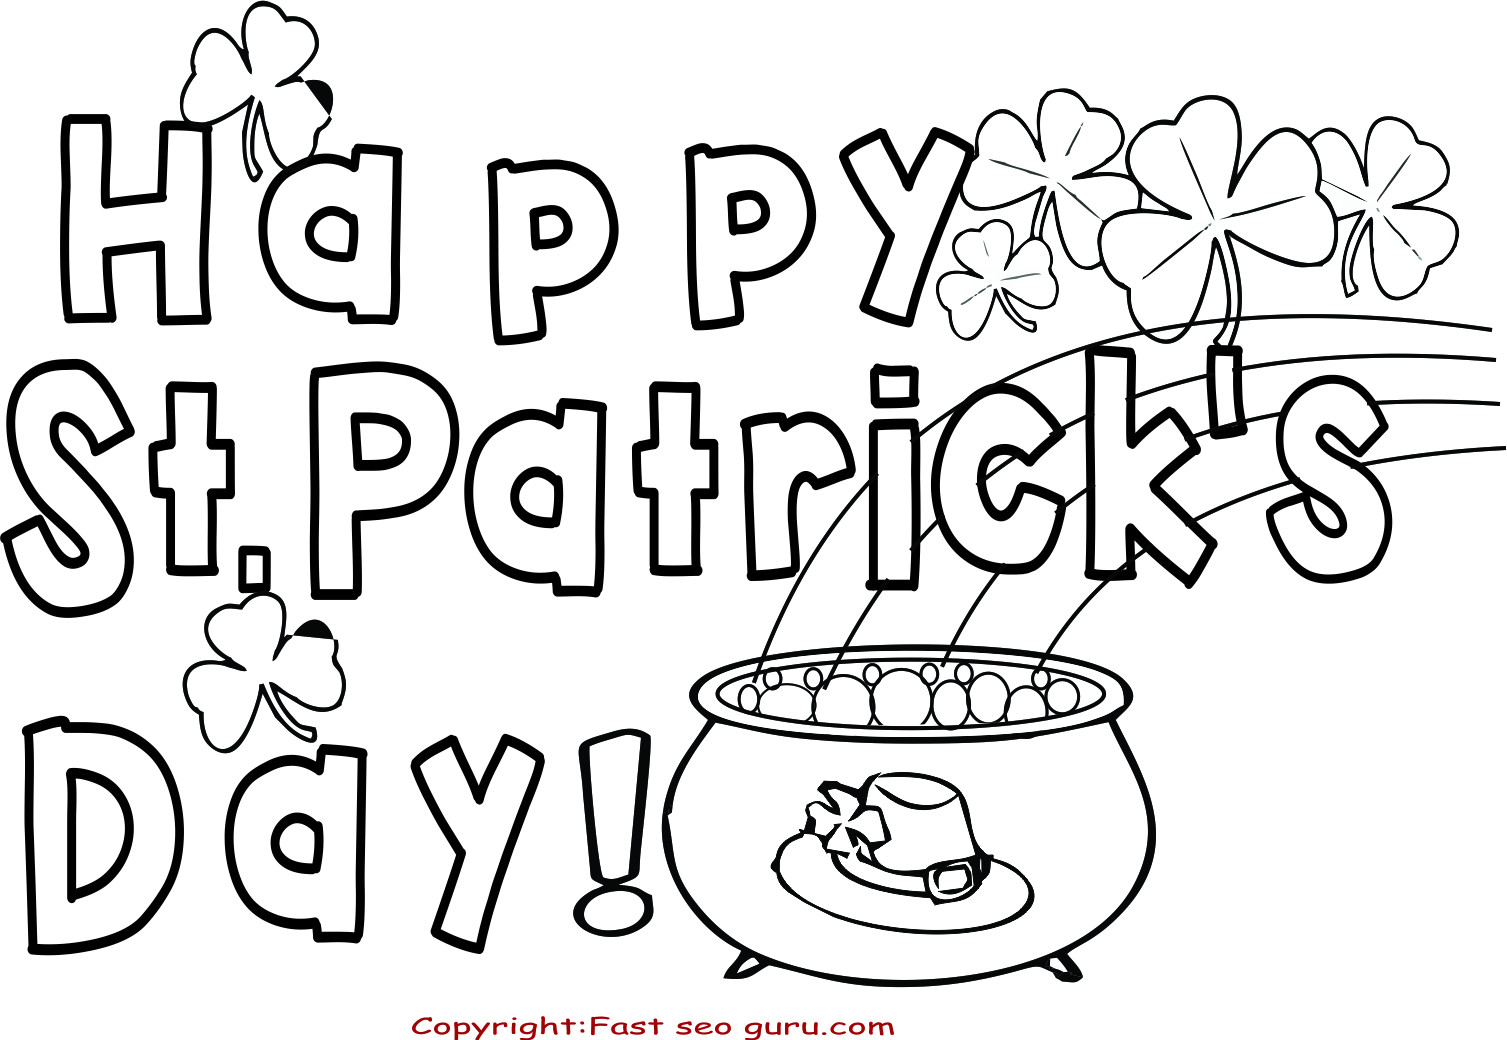 Best ideas about Free Coloring Sheets For Kids For St Patrick'S Day . Save or Pin 83 Printable St Patricks Day Coloring Pages St Patrick Now.